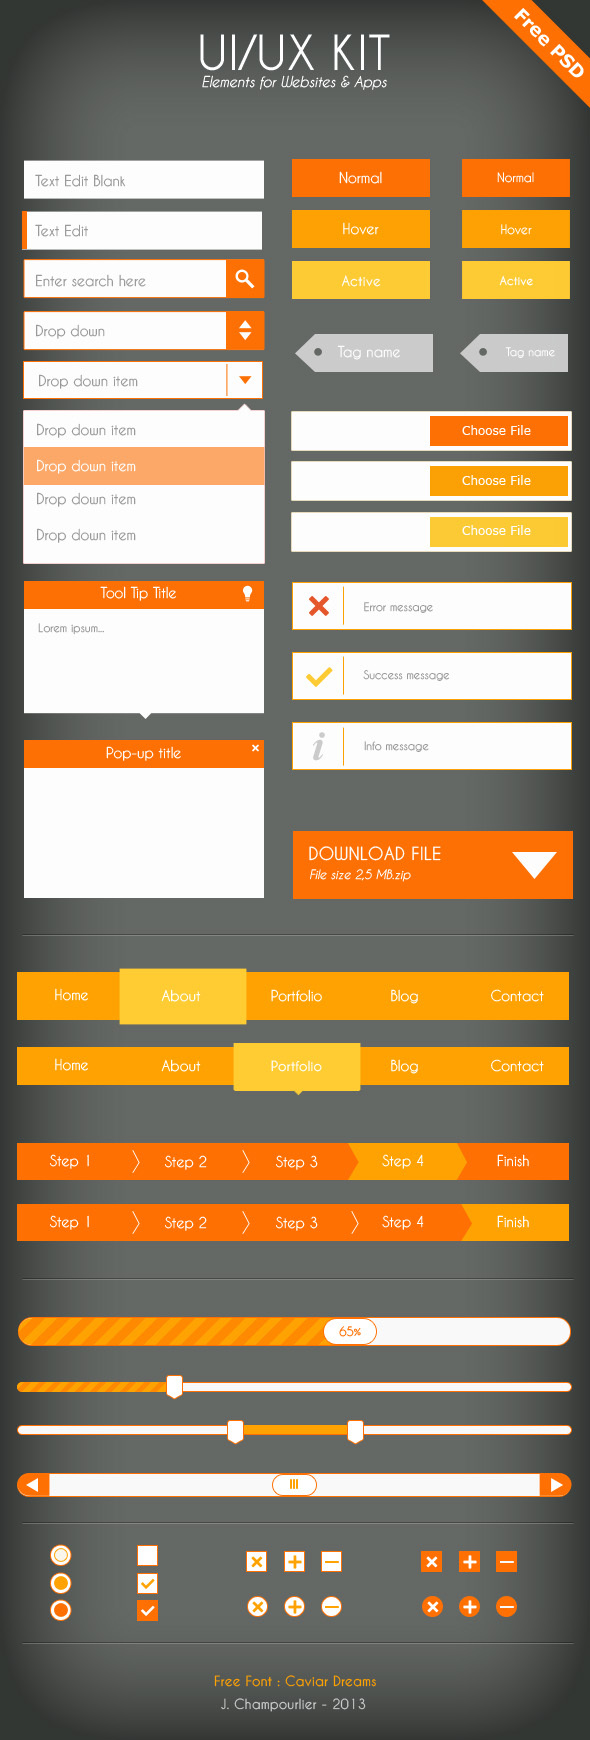 UI UX Kit Elements For Website & APP (PSD) 2